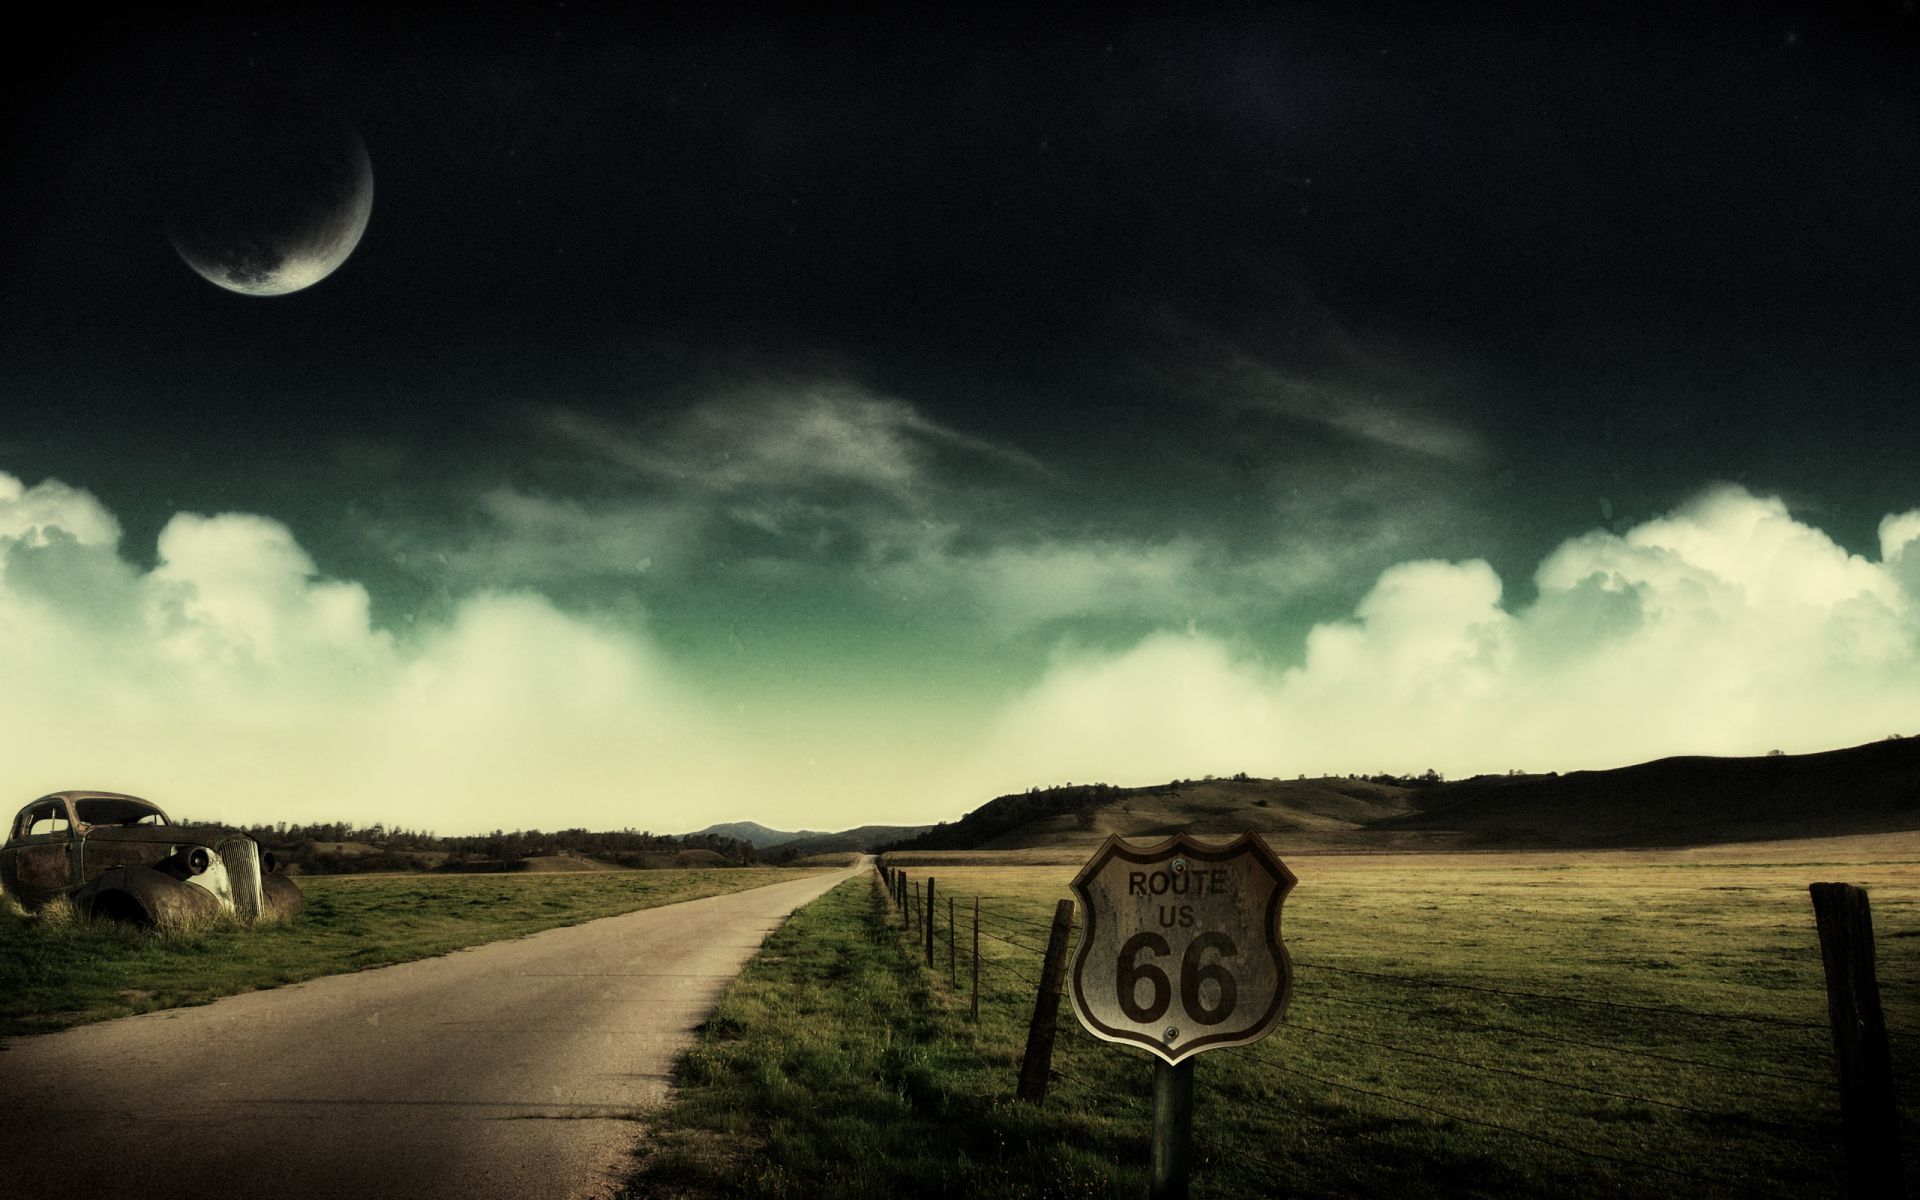 Route 66 HD background Wallpaper | nice | Pinterest | Abstract art ...